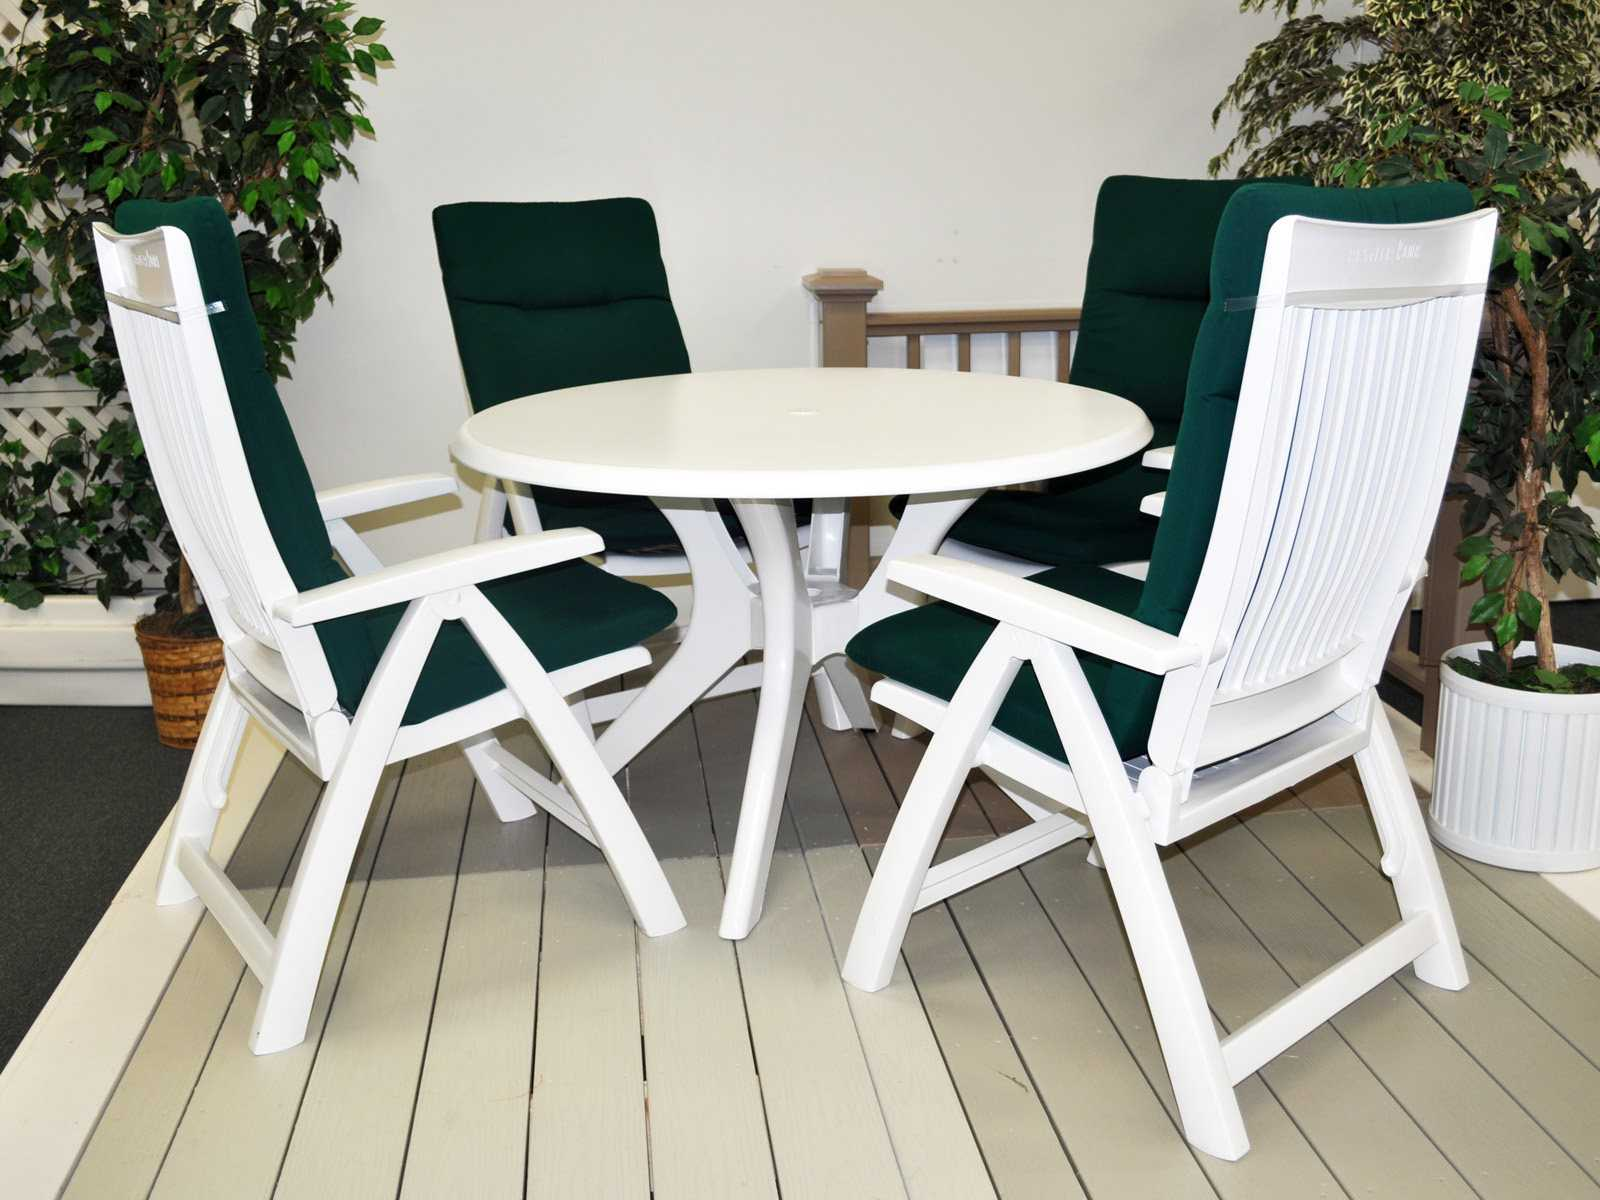 Resin Patio Chairs Kettler Roma Multi Position Arm Chair 1438 000